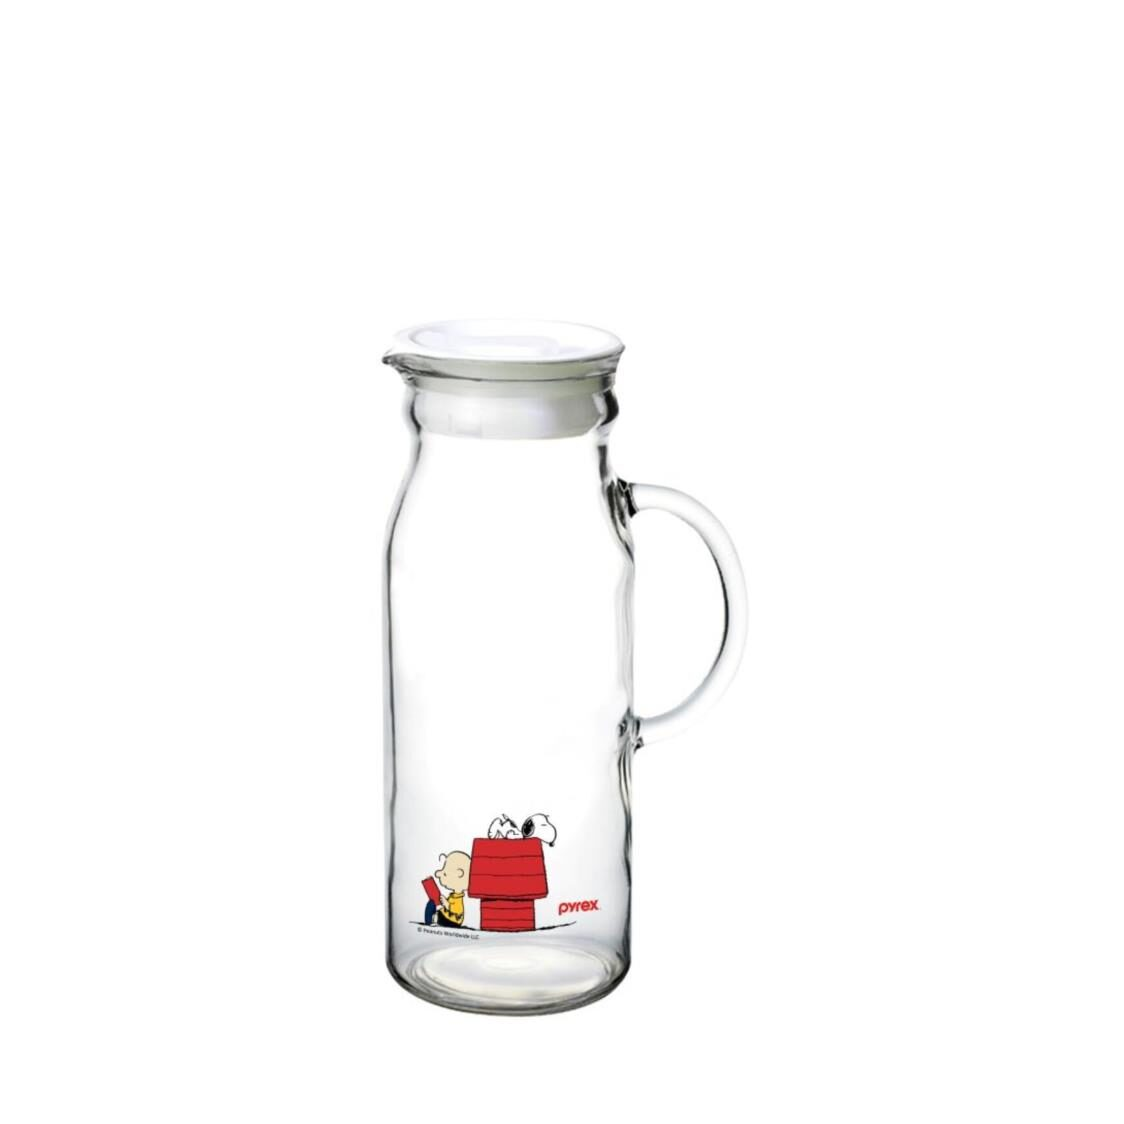 Pyrex Carafe Water Jug 12l - Snoopy Colourful